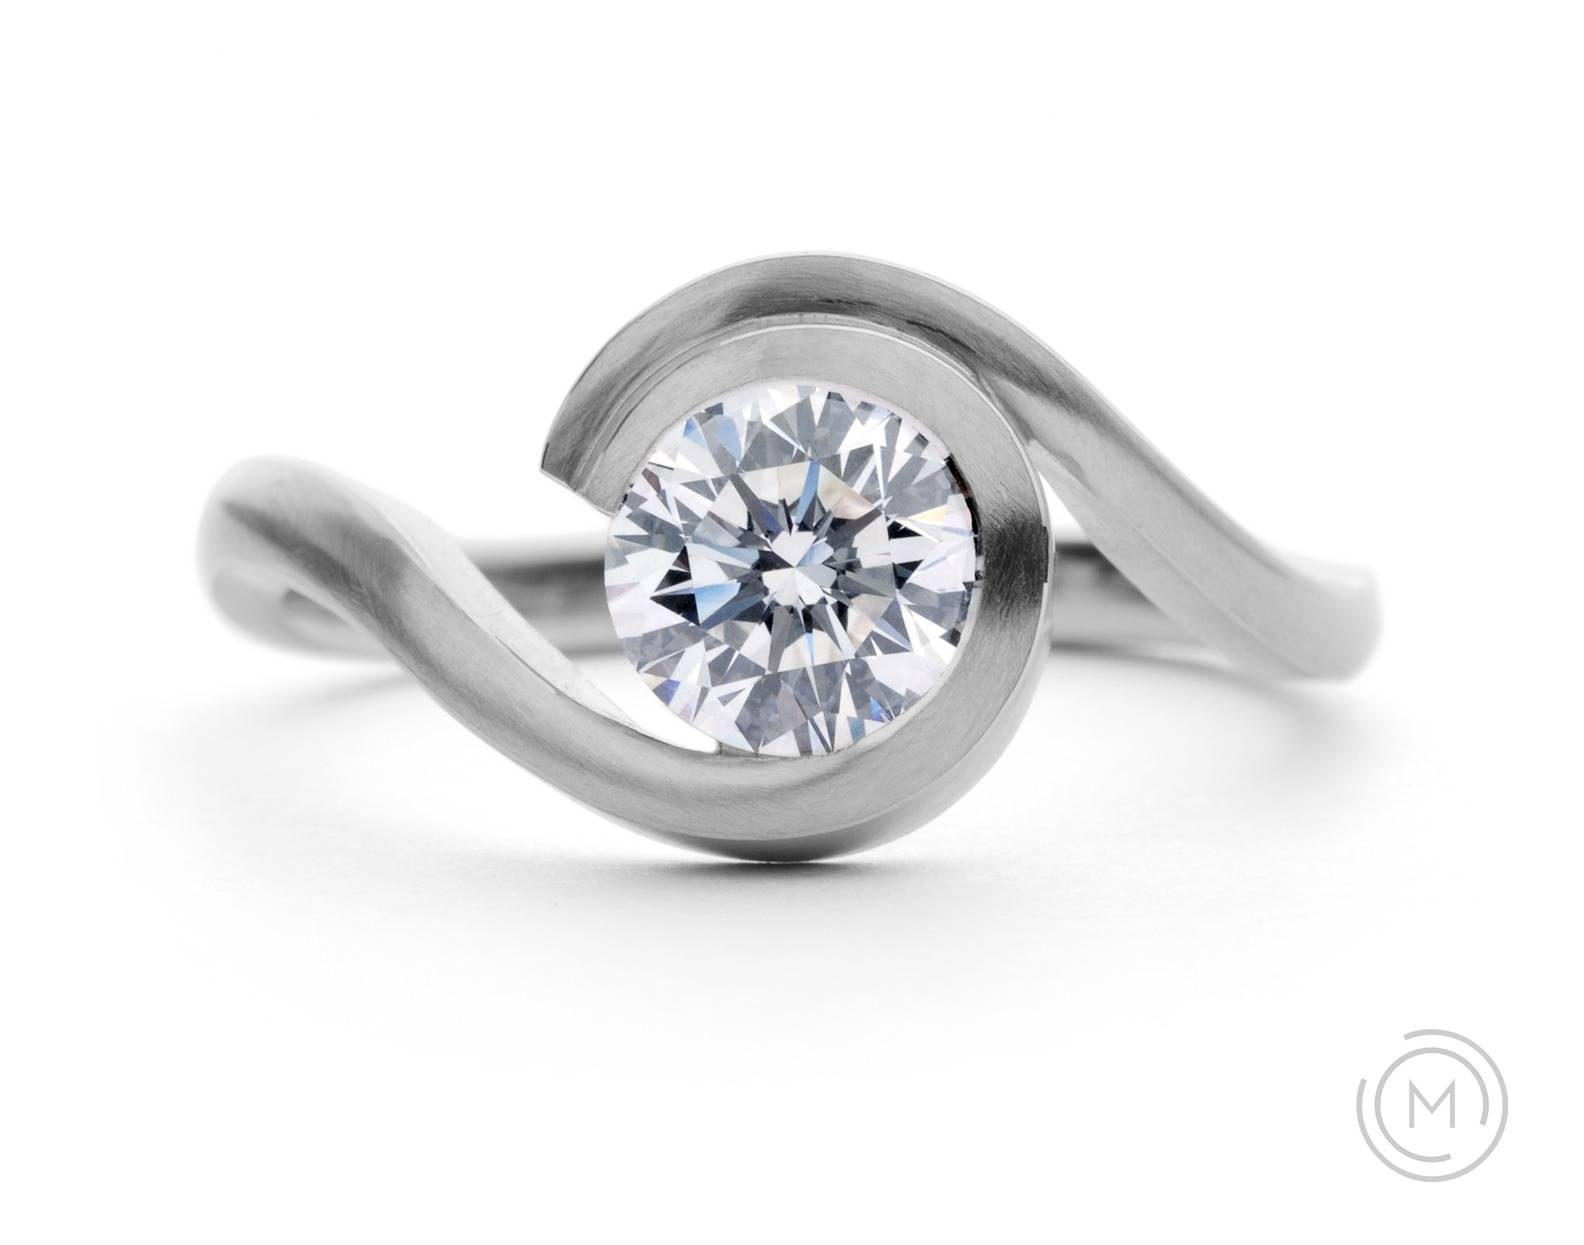 Modern Style Diamond Rings | Wedding, Promise, Diamond, Engagement Regarding Modern Diamond Wedding Rings (View 9 of 15)